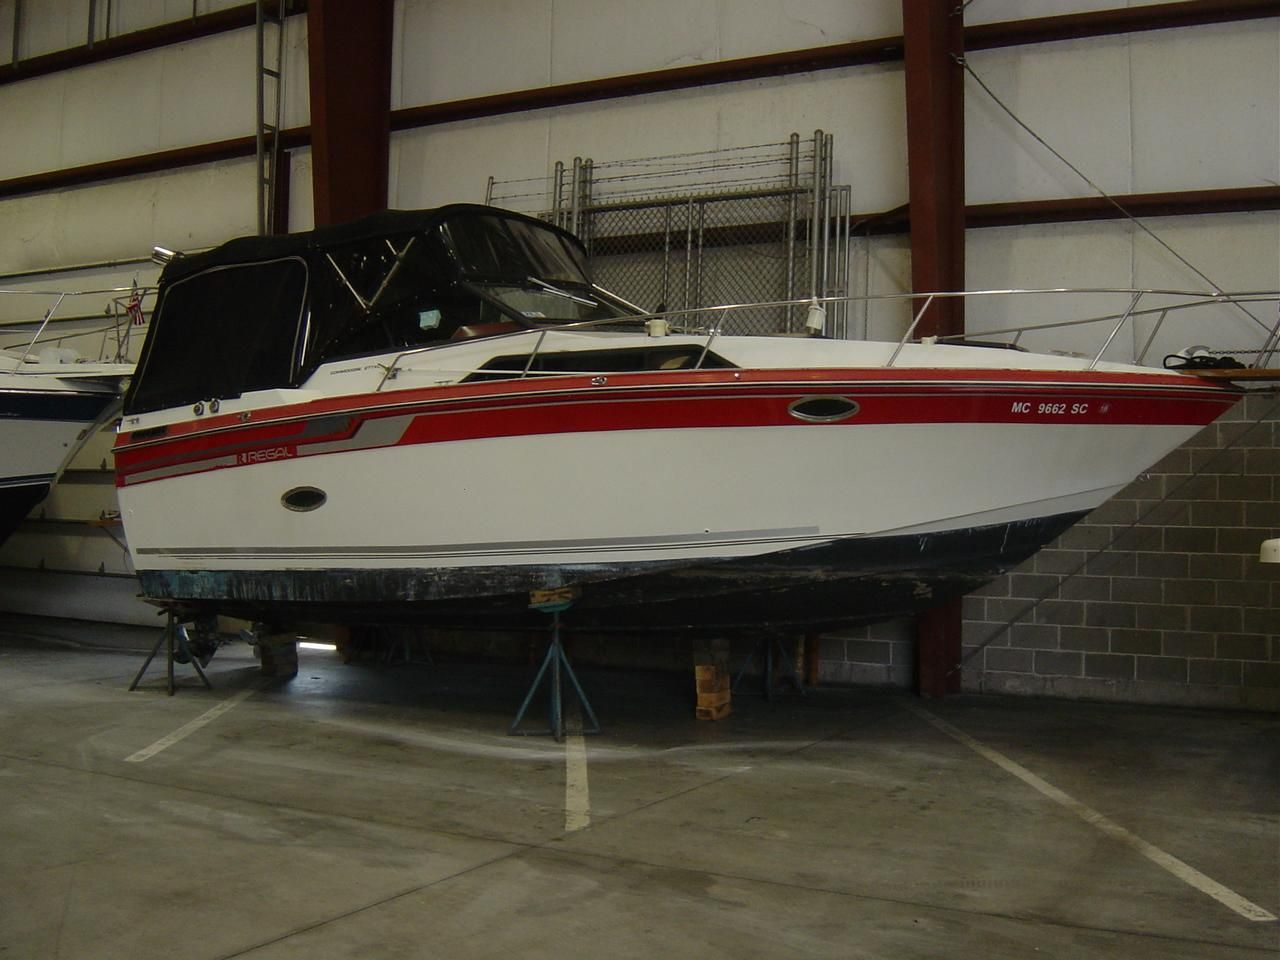 1987 Regal Commodore 277XL Power Boat For Sale www.yachtworld.com #5D4031